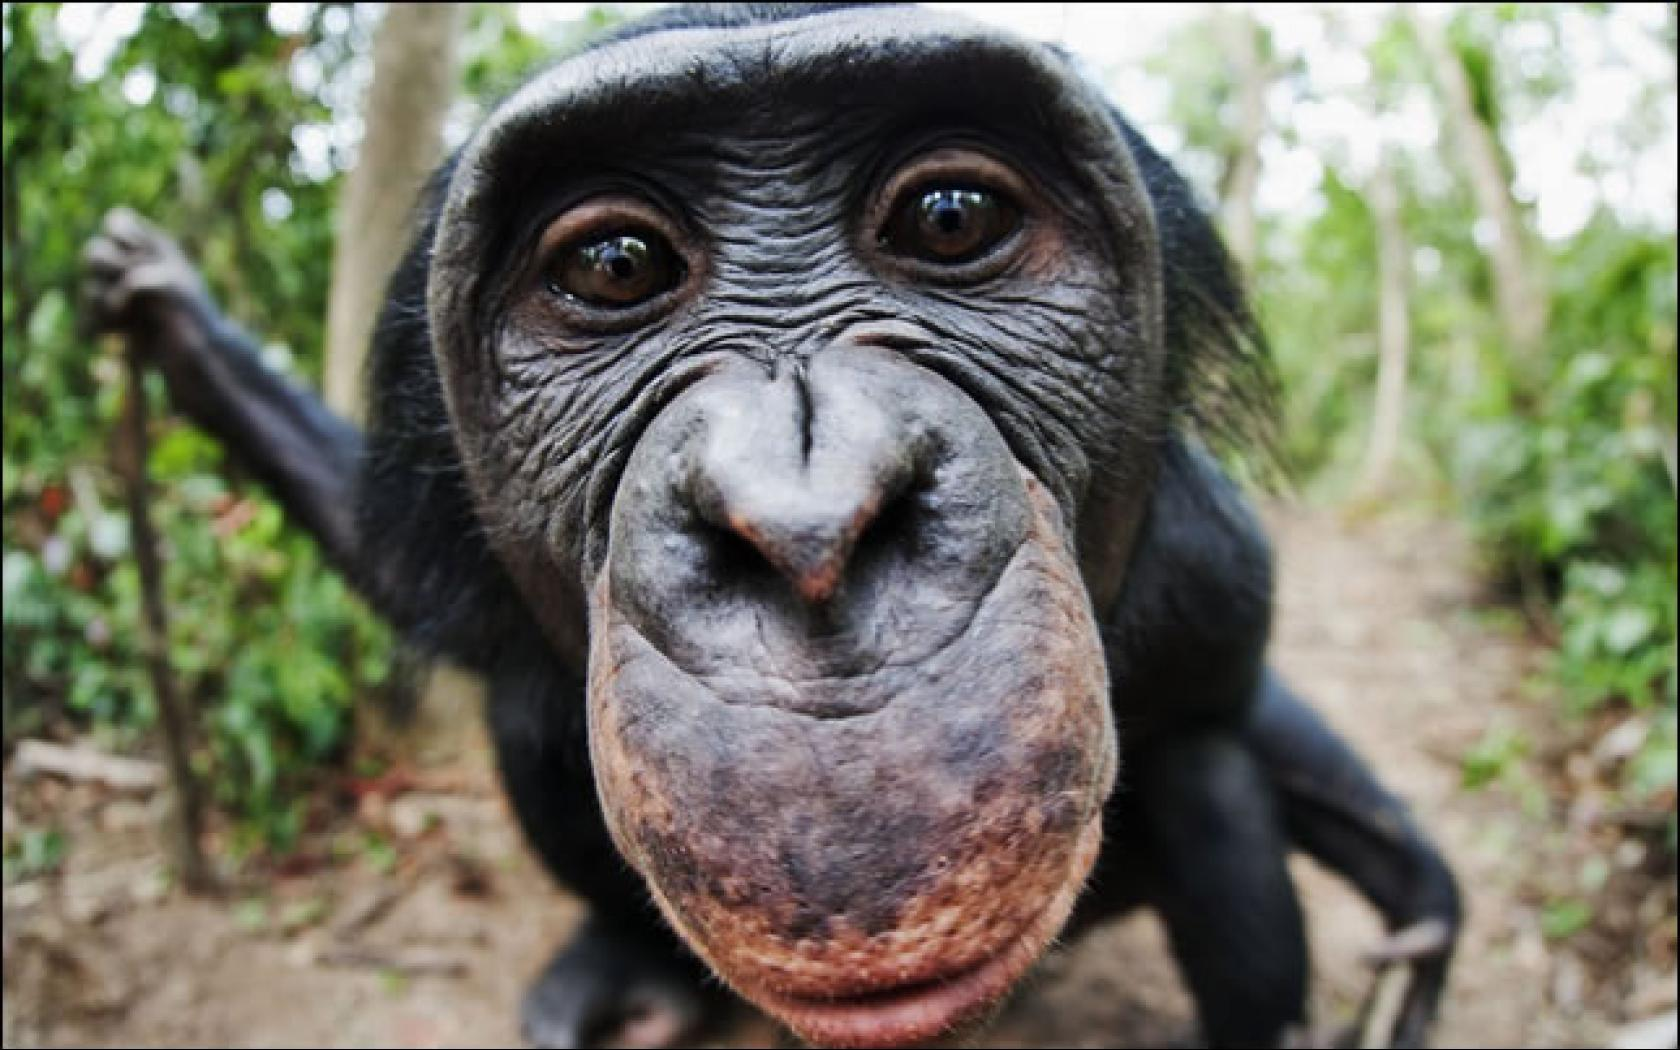 close-up-chimpanzee-hd-wallpapers.jpg